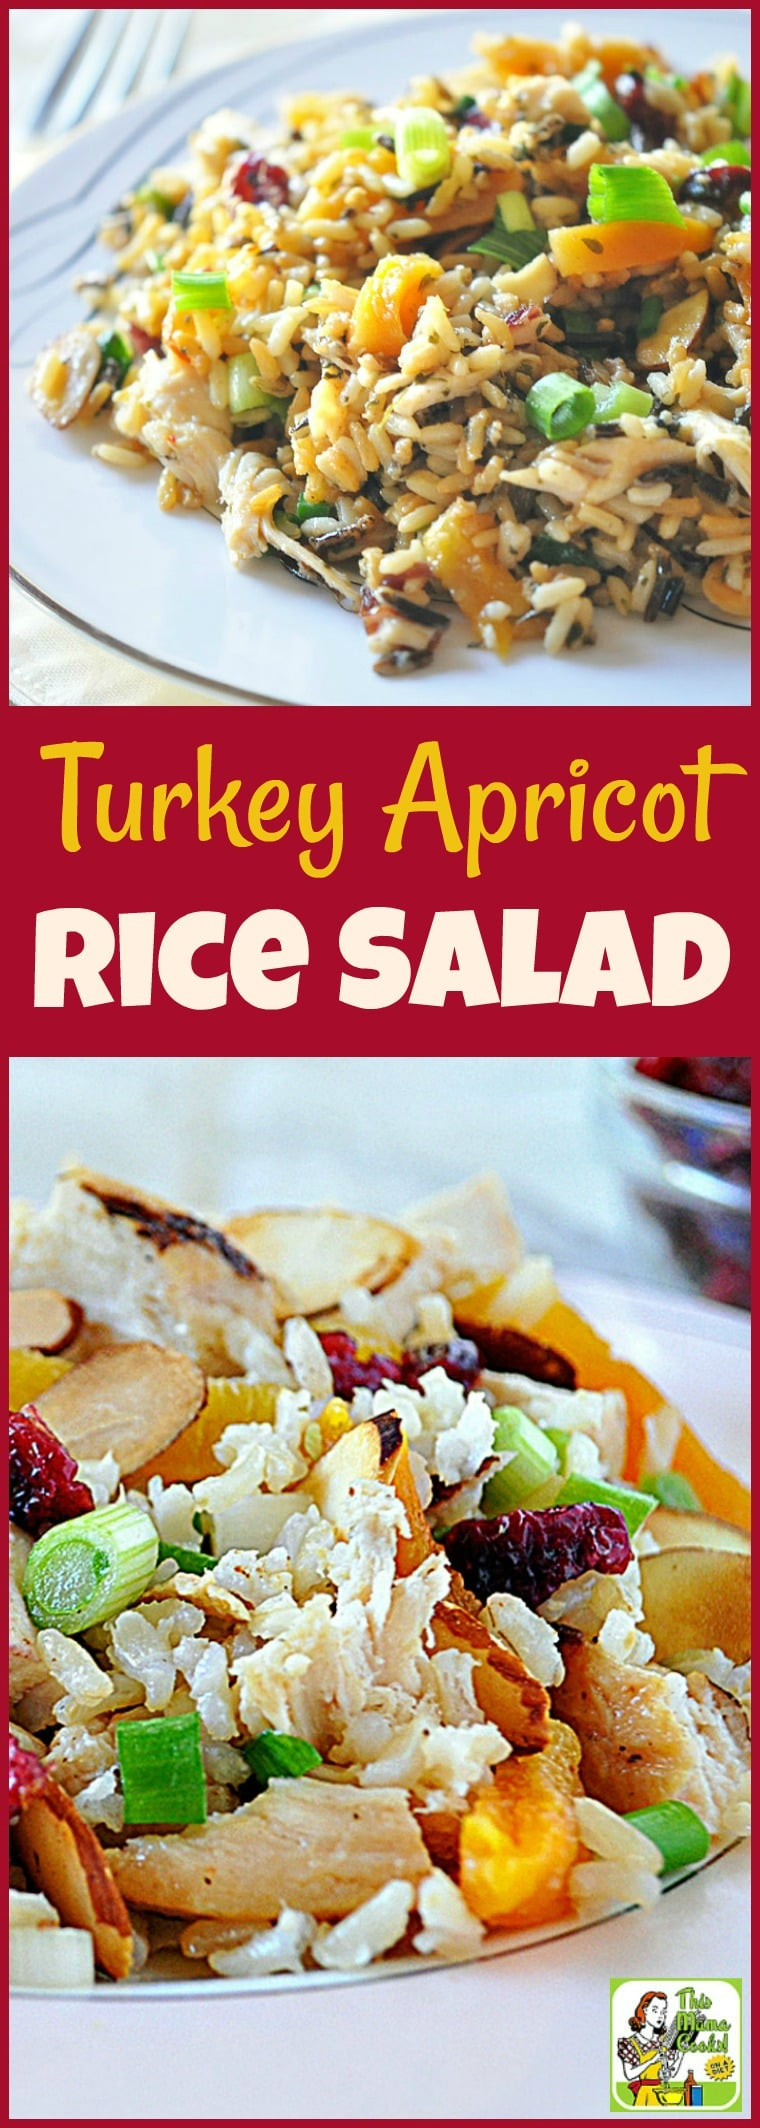 Cooking Thanksgiving leftovers? Then you\'ll love easy Thanksgiving leftover recipes like this Turkey Apricot Rice Salad! It\'s a gluten free salad recipe that\'s a handy way to use Thanksgiving leftovers. It\'s also diabetic friendly. #recipe #easy #recipeoftheday #healthyrecipes #glutenfree #easyrecipes #salad #turkey #thanksgiving #apricot #rice #diabeticfriendly #healthy #leftovers #thanksgivingleftovers